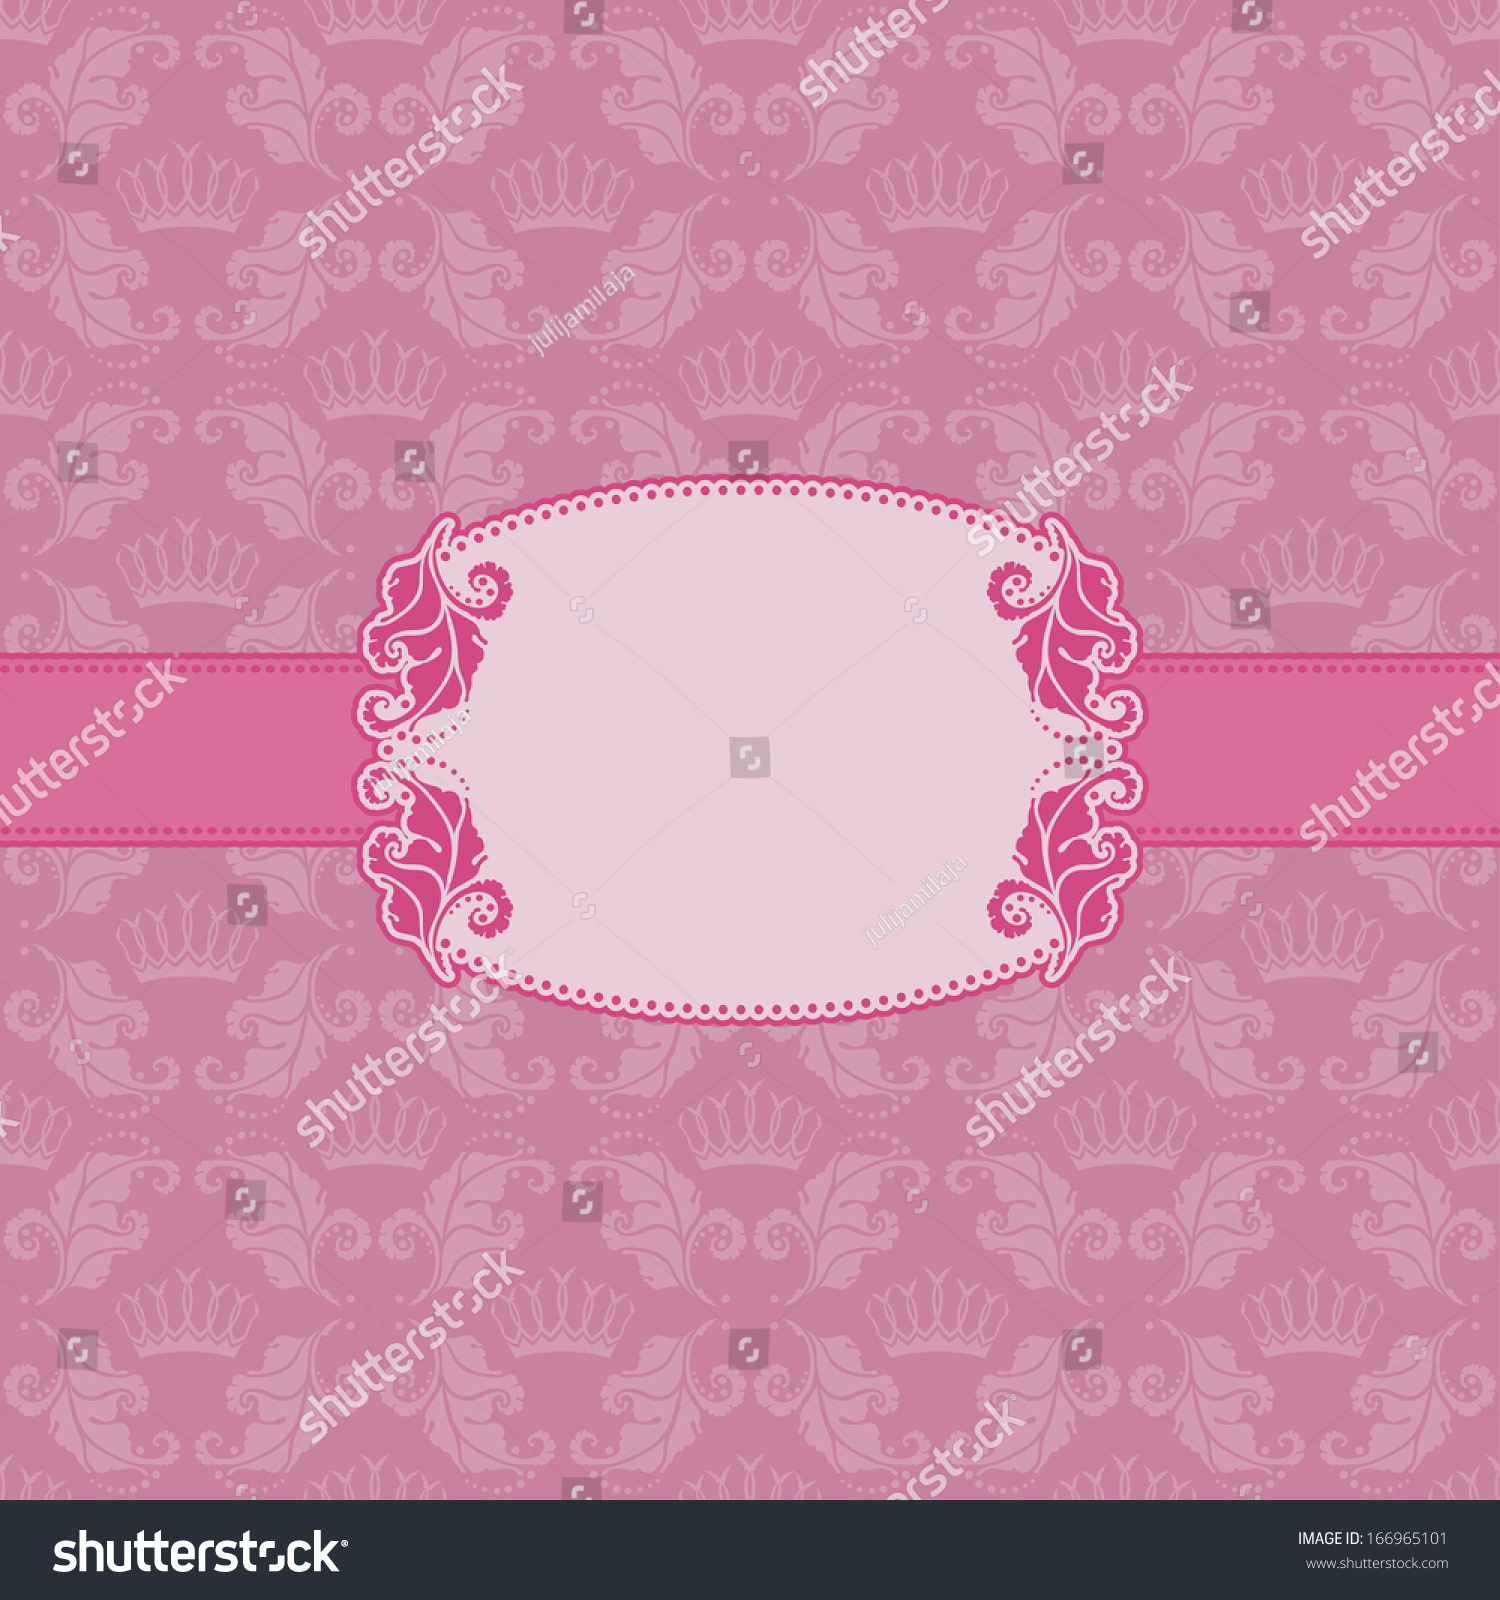 Elegant royal frame with crown vector colourbox - Vector Template Frame Design For Greeting Card Background Seamless Pattern